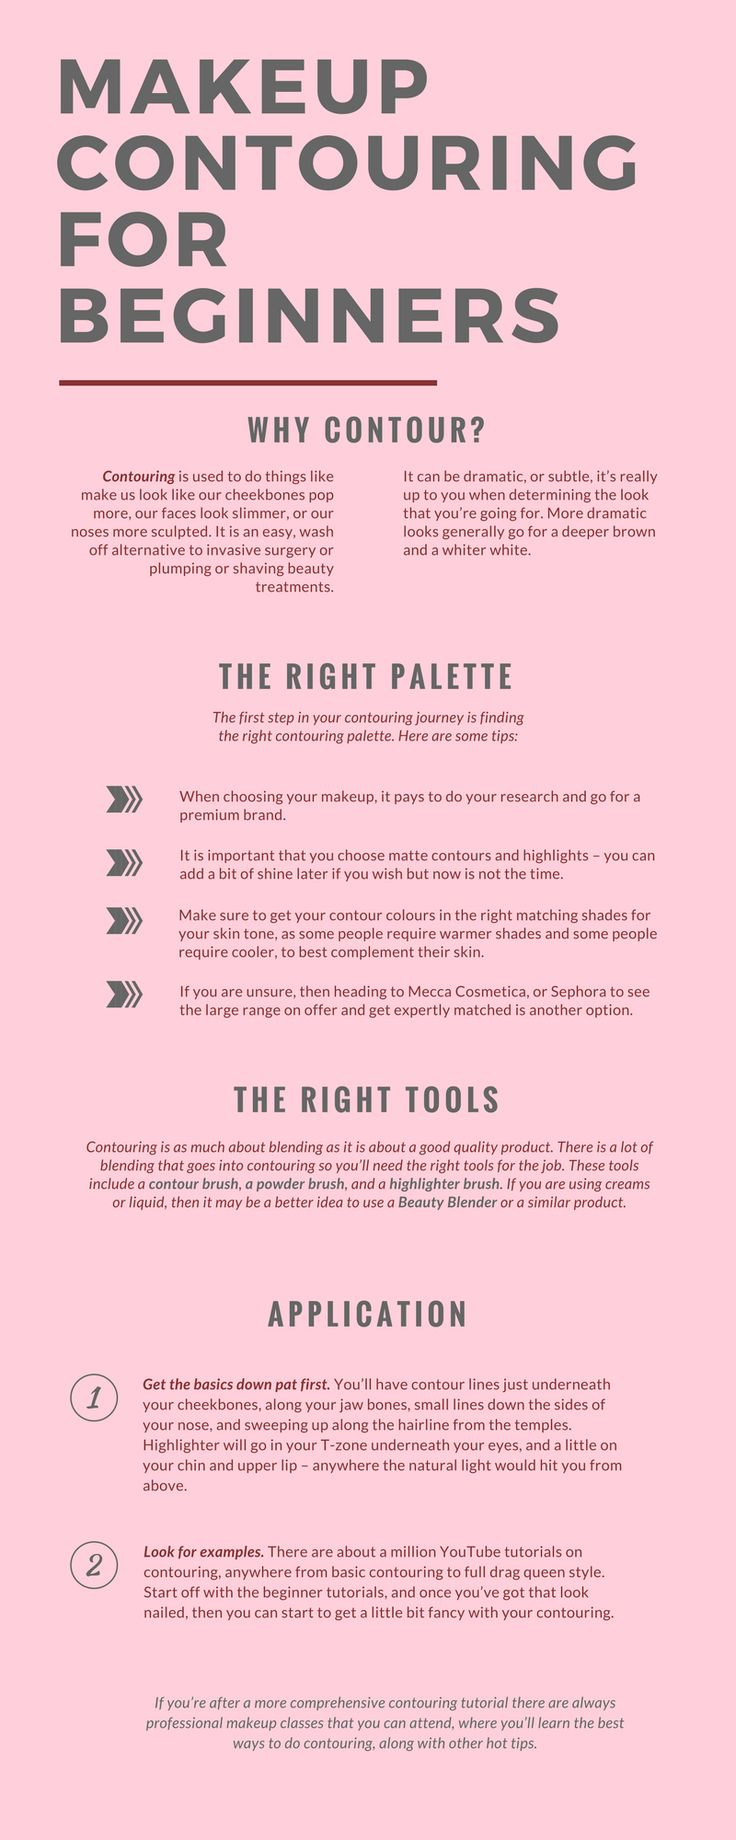 Contouring is a most popular makeup technique. It is a pivotal part of the daily makeup routine. However, if you are not familiar with these techniques, then you may join any good makeup school. You can also check out this Infographic where you can learn about what is the need of contouring, which palette to choose, and picking up the right tools.